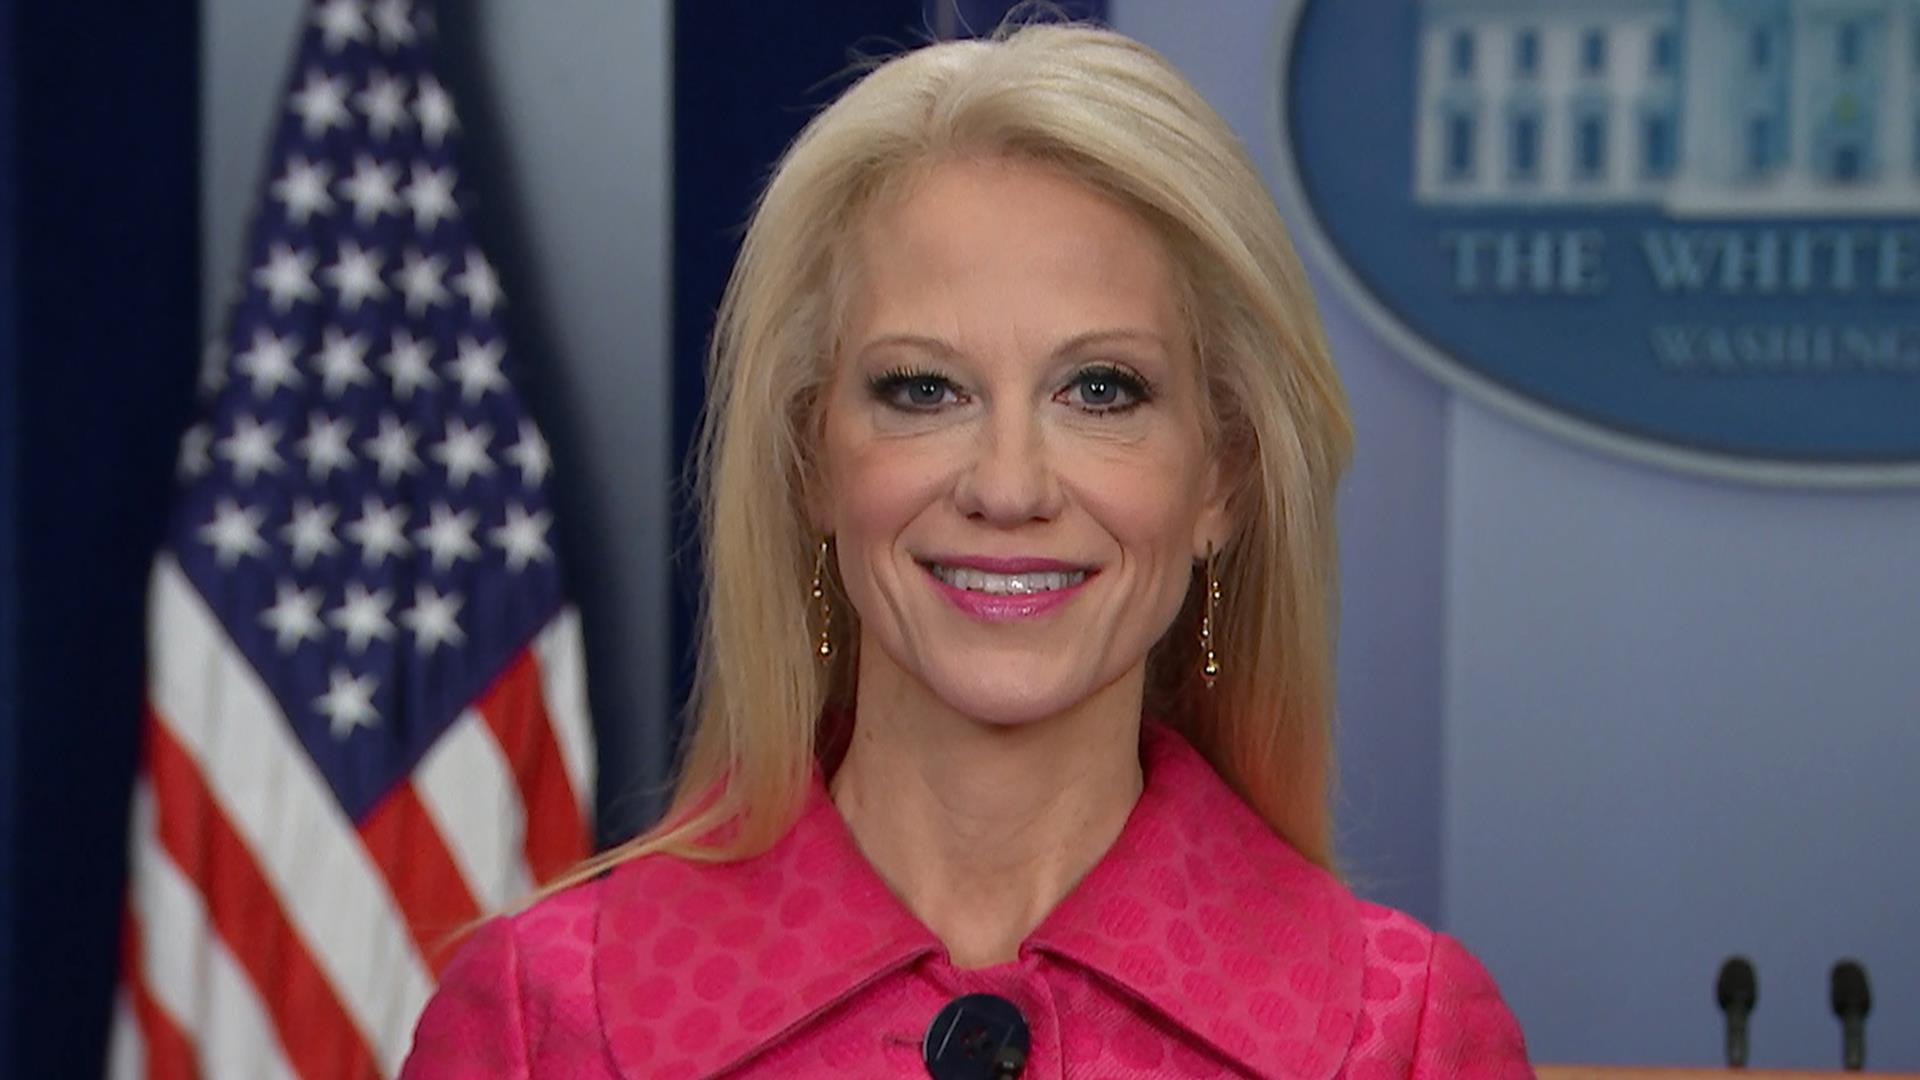 kellyanne conway defends trump on border wall and unsubstantiated kellyanne conway defends trump on border wall and unsubstantiated voter fraud claims nbc news